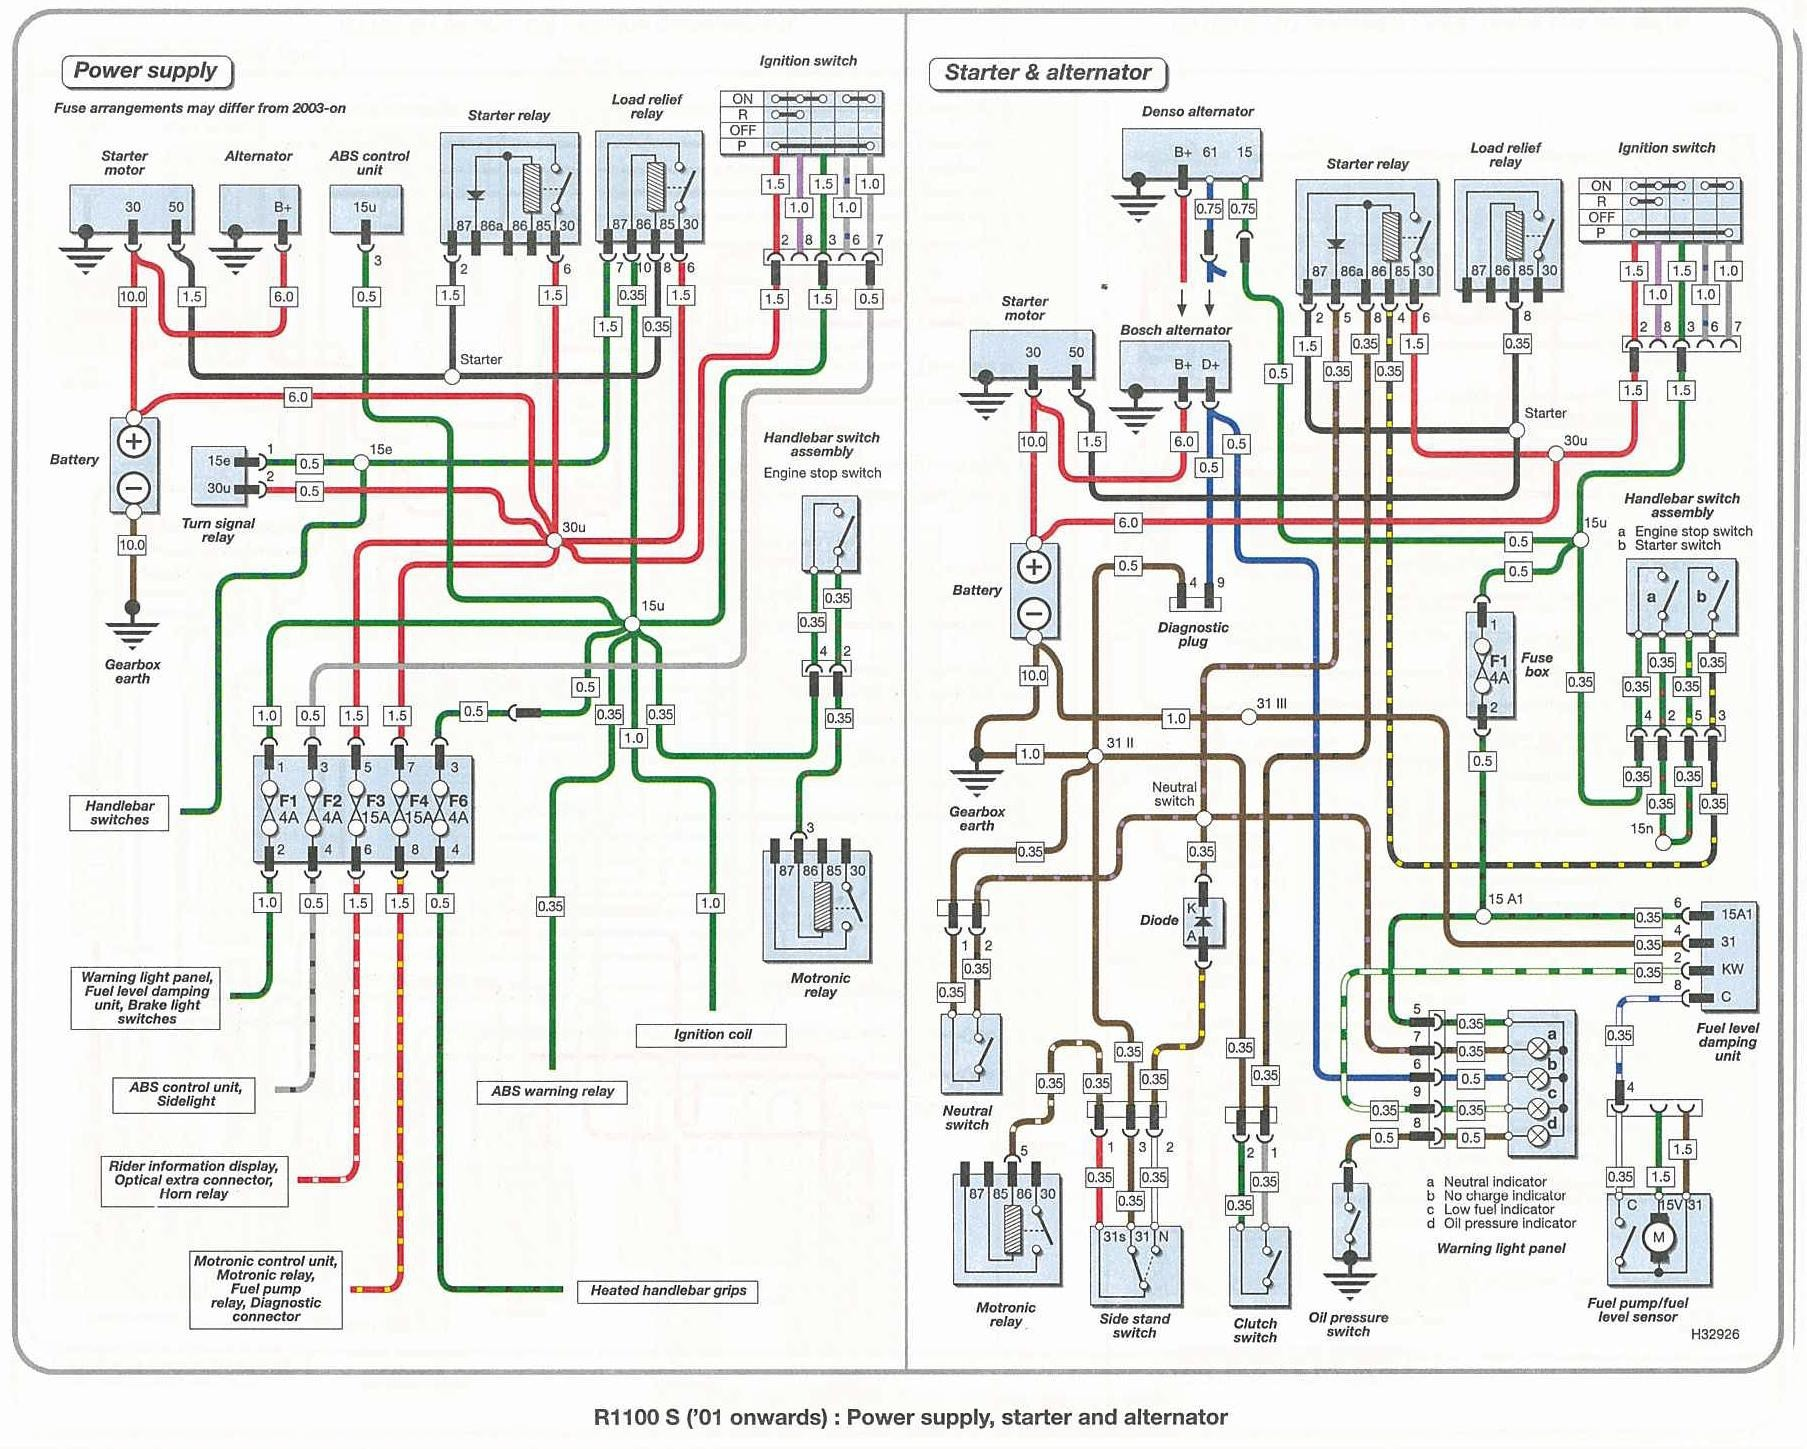 Bmw R1100r Wiring Schematics Electrical Diagrams E53 Diagram R1100rs Basic U2022 Rh Rnetcomputer Co E90